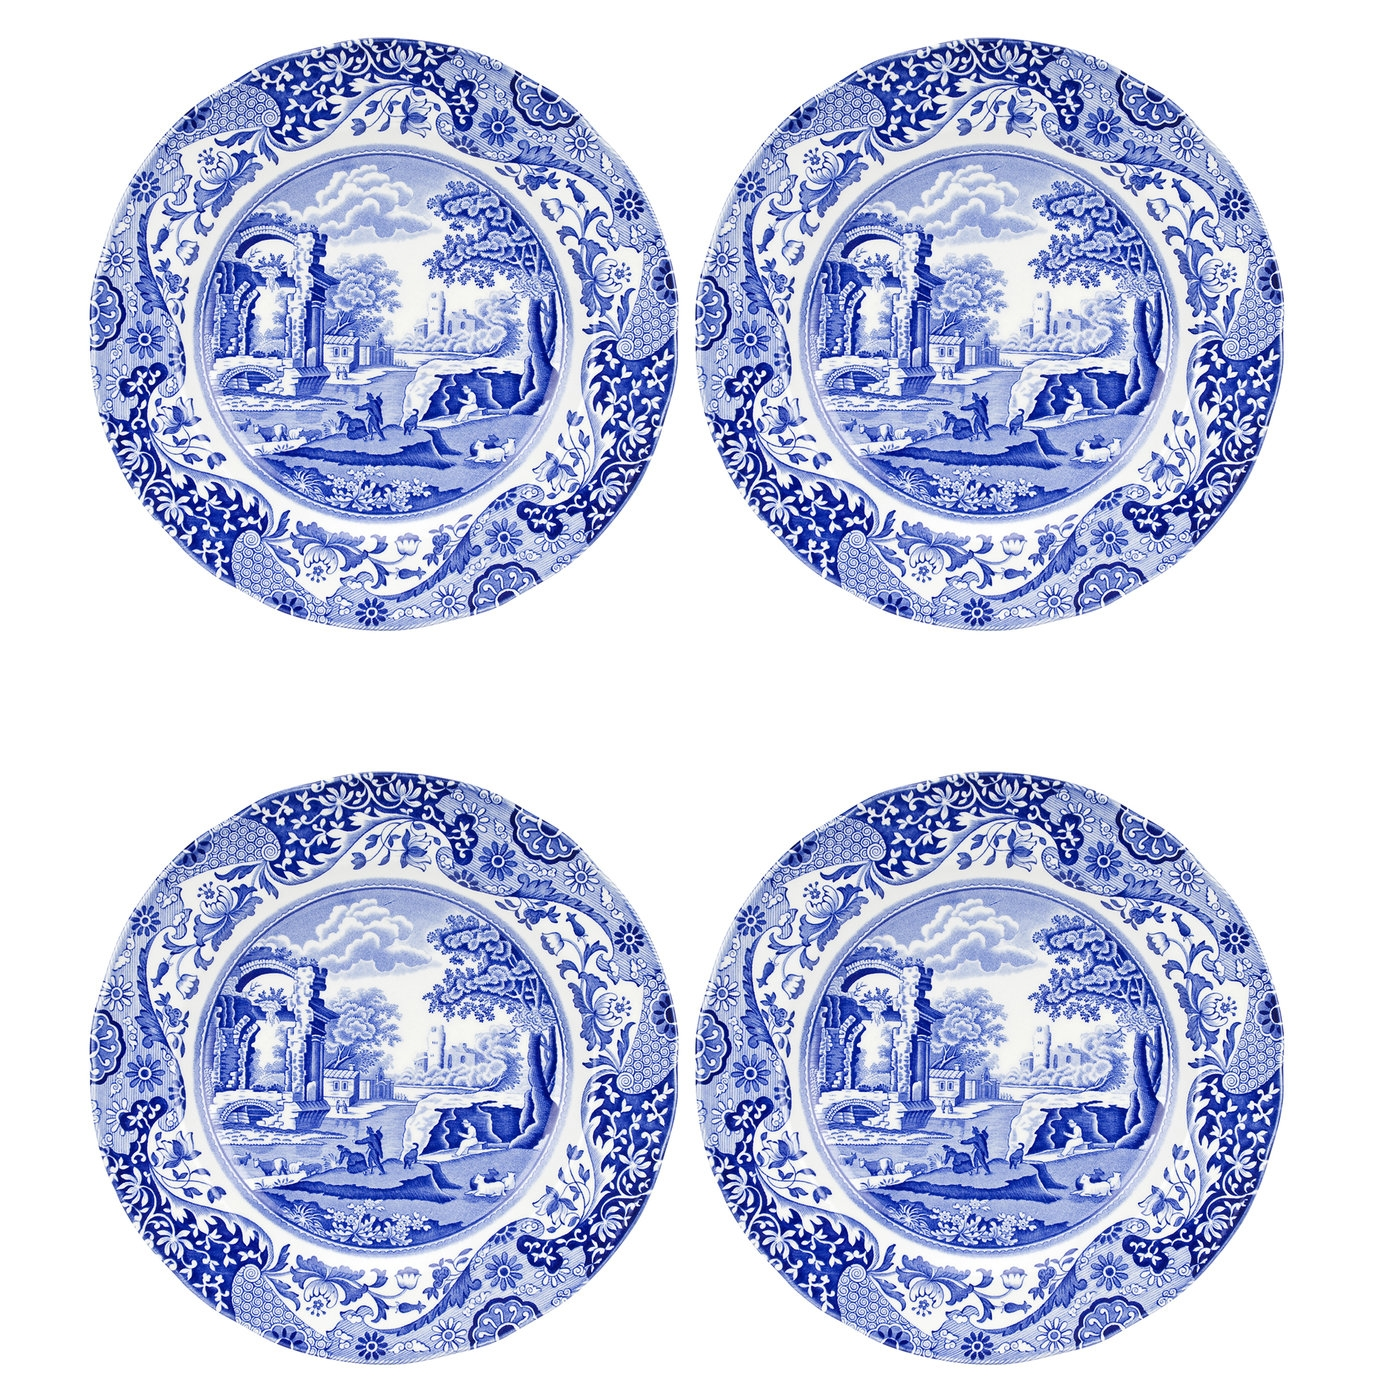 Spode Blue Italian Set of 4 Dinner Plates image number 0